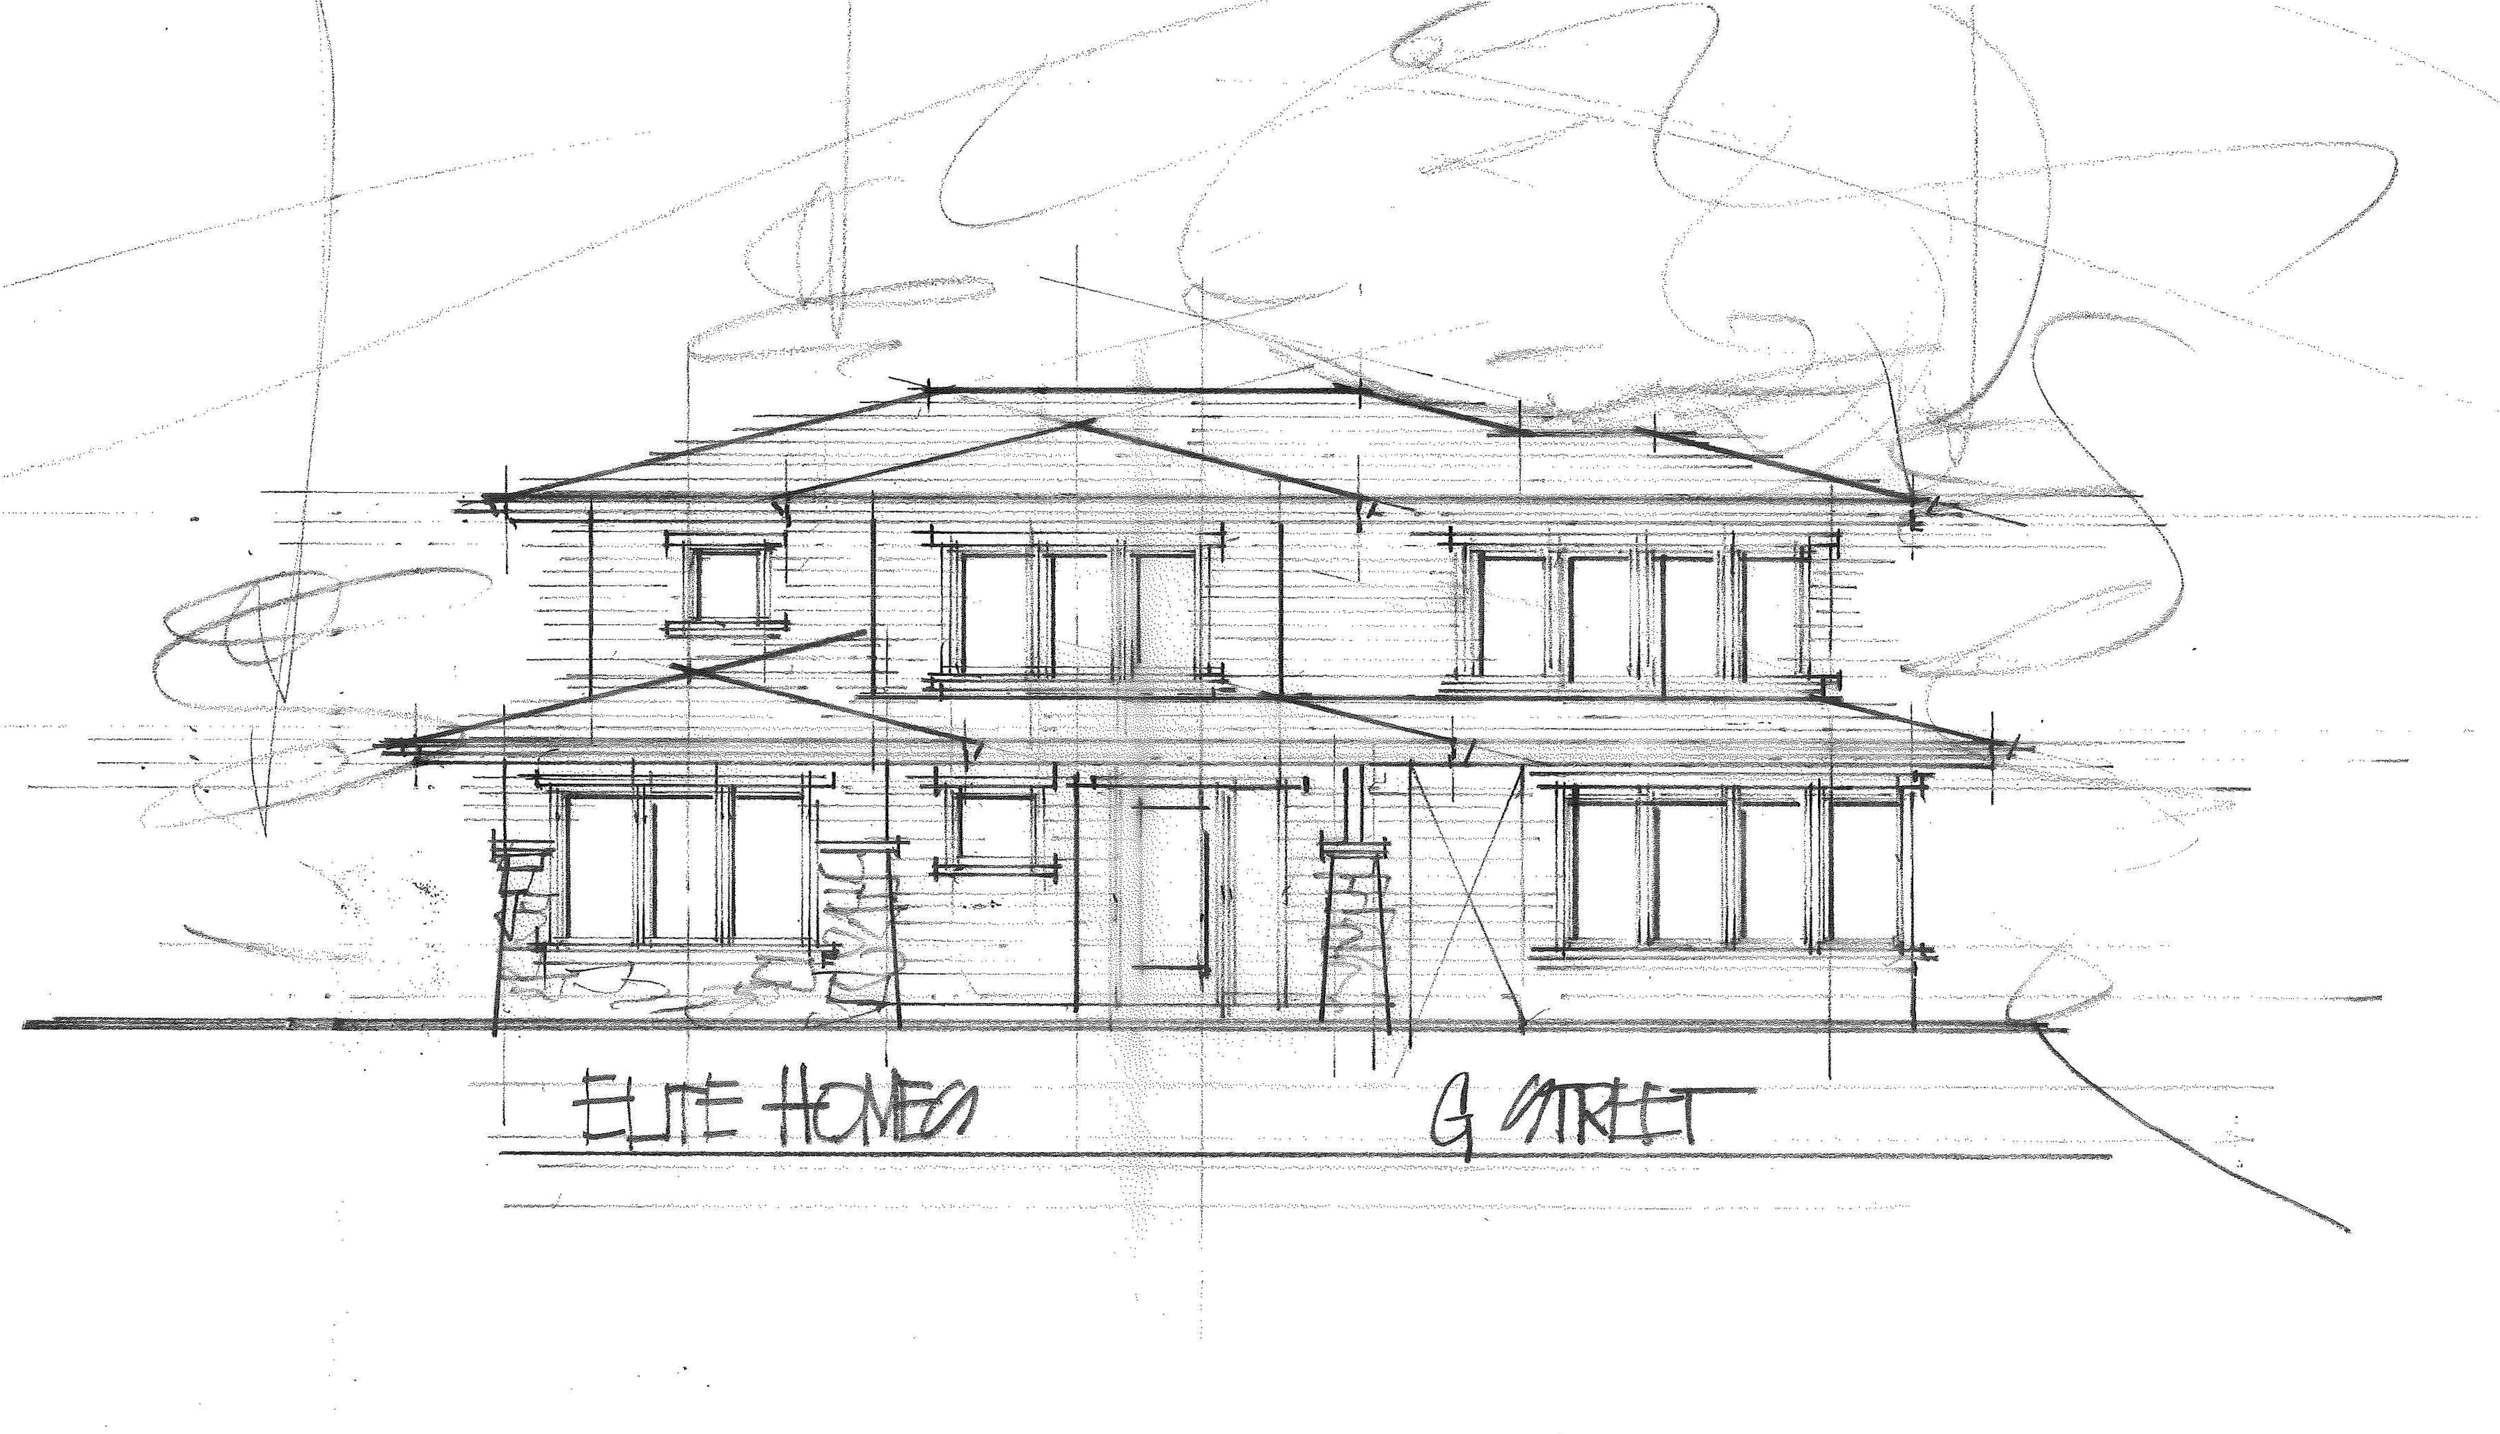 Custom design for Elite Homes